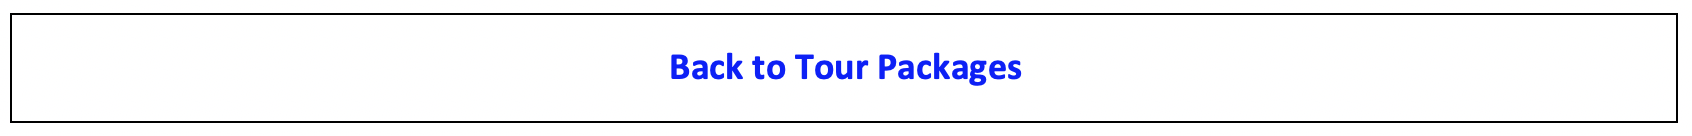 Enjoy Tours Limited Back to Tour Packages